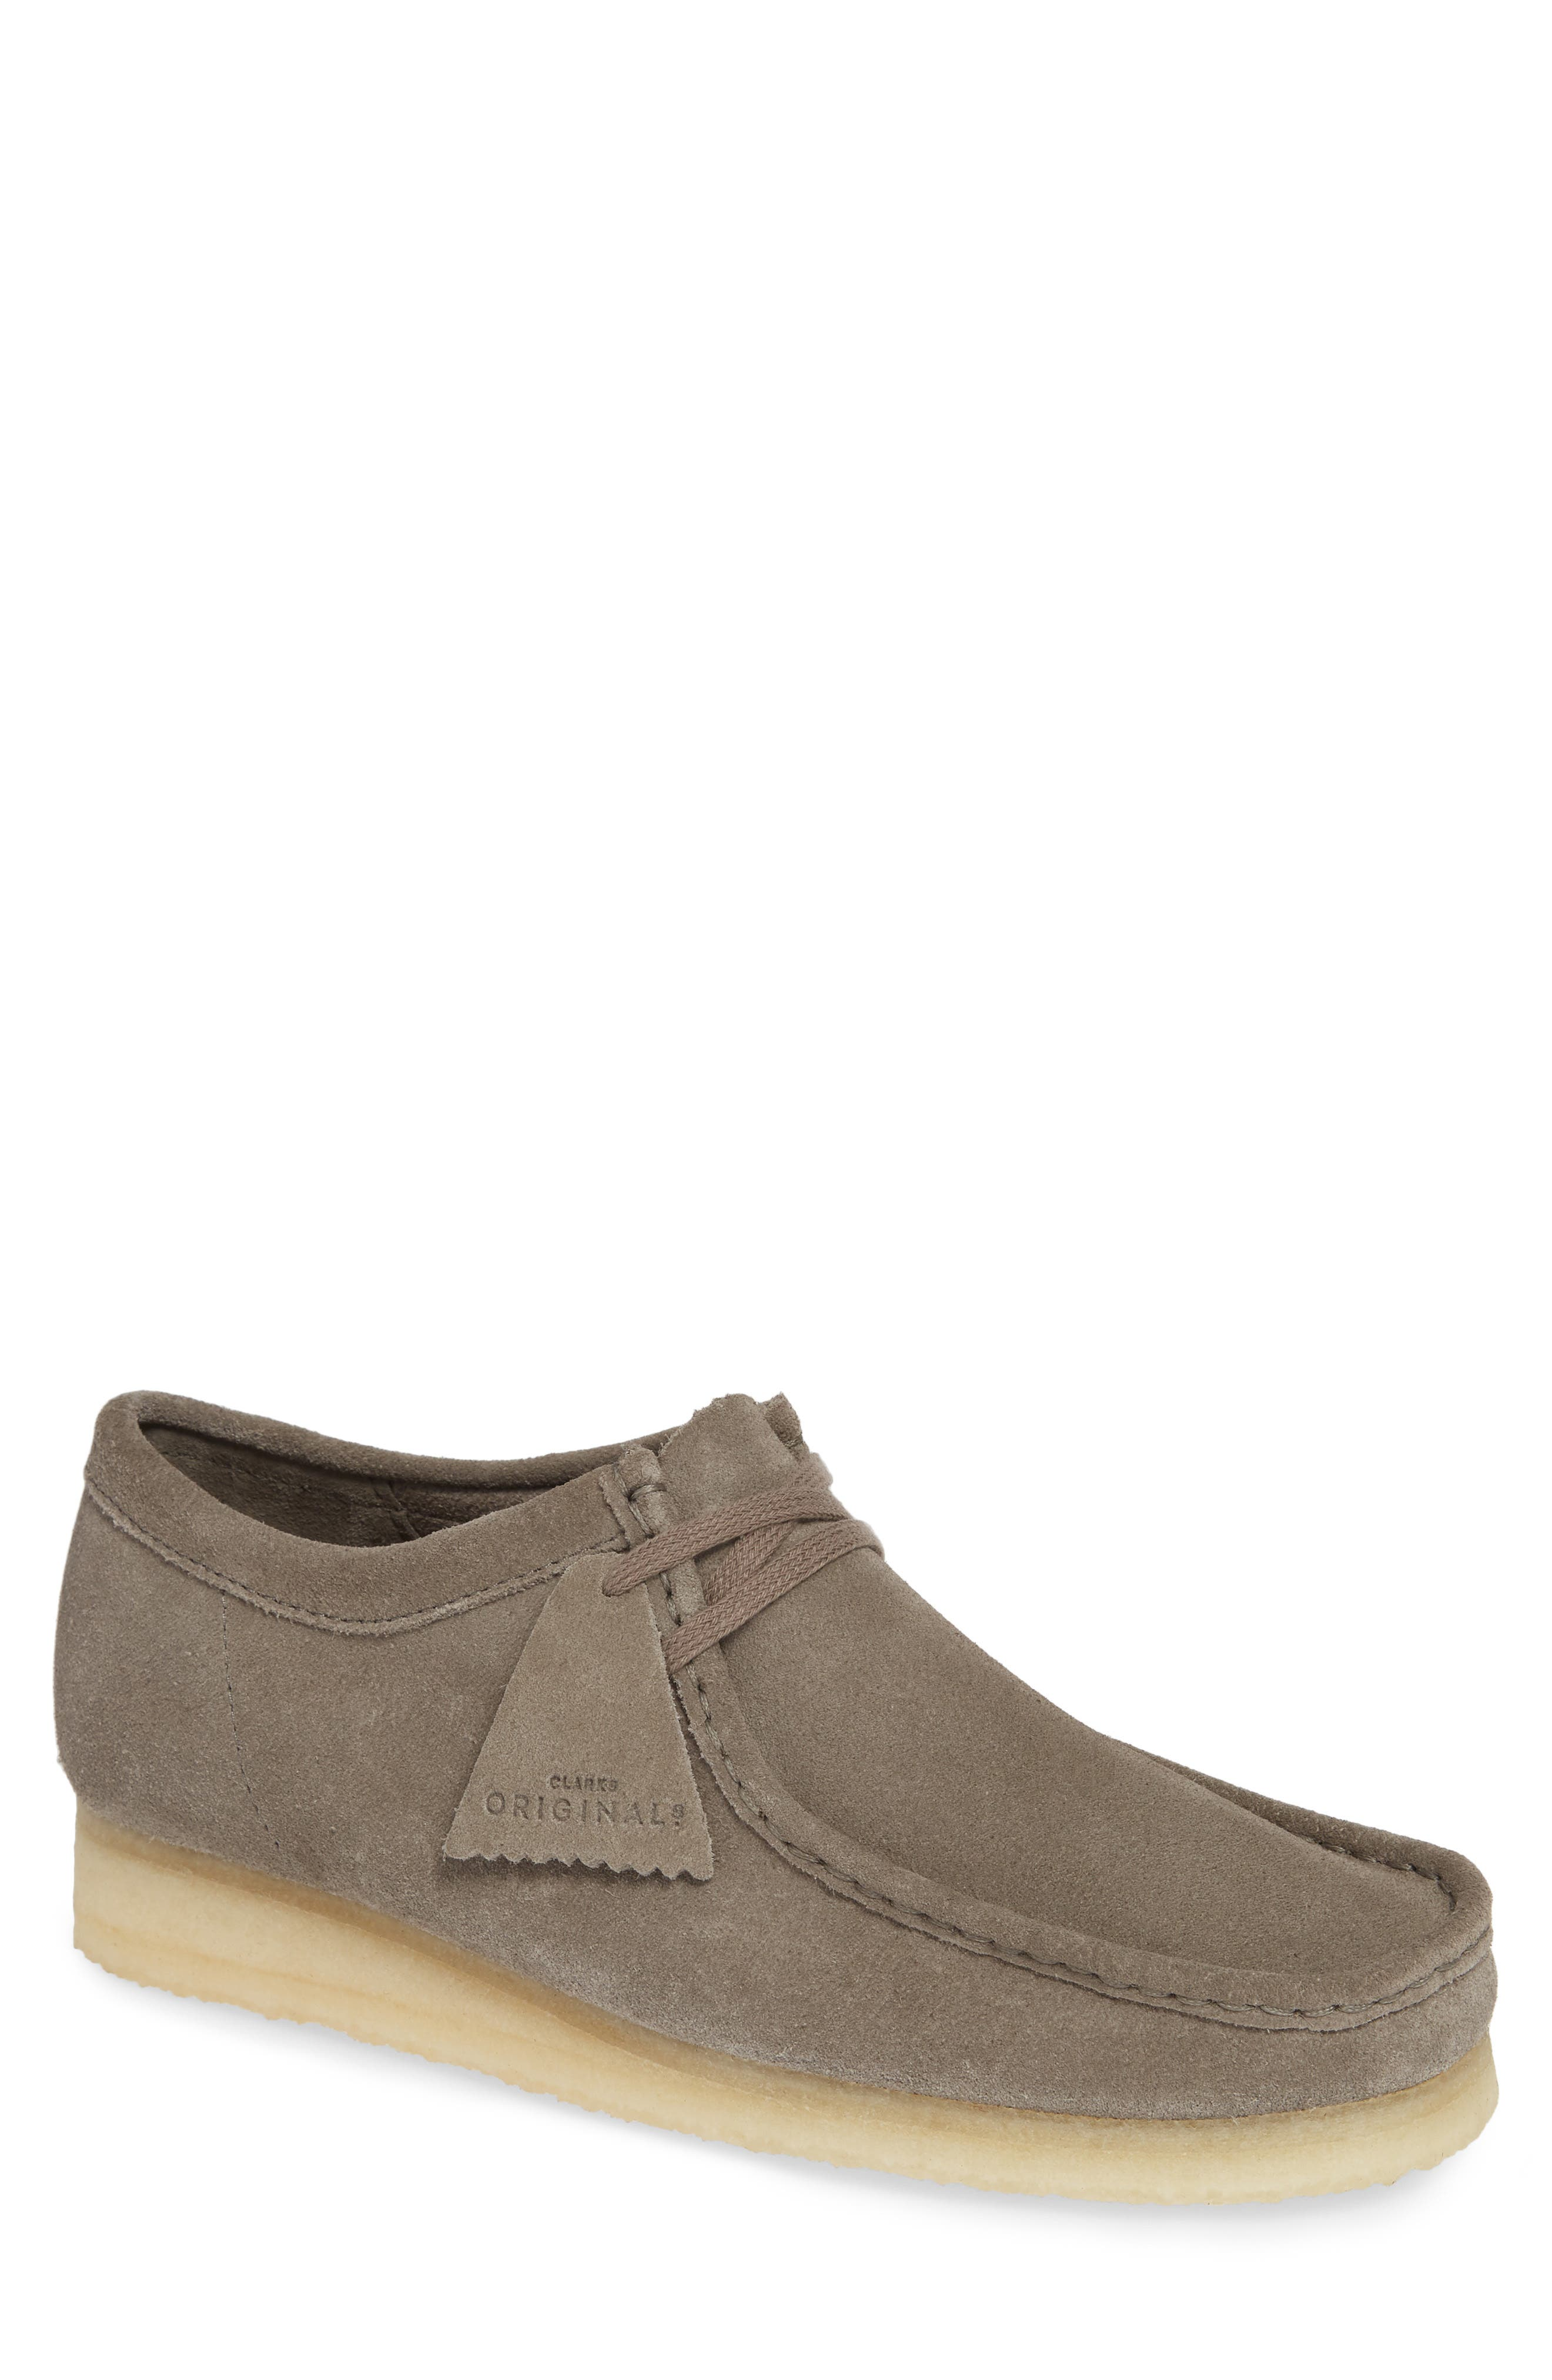 'Wallabee' Moc Toe Derby,                             Main thumbnail 1, color,                             GREY LEATHER